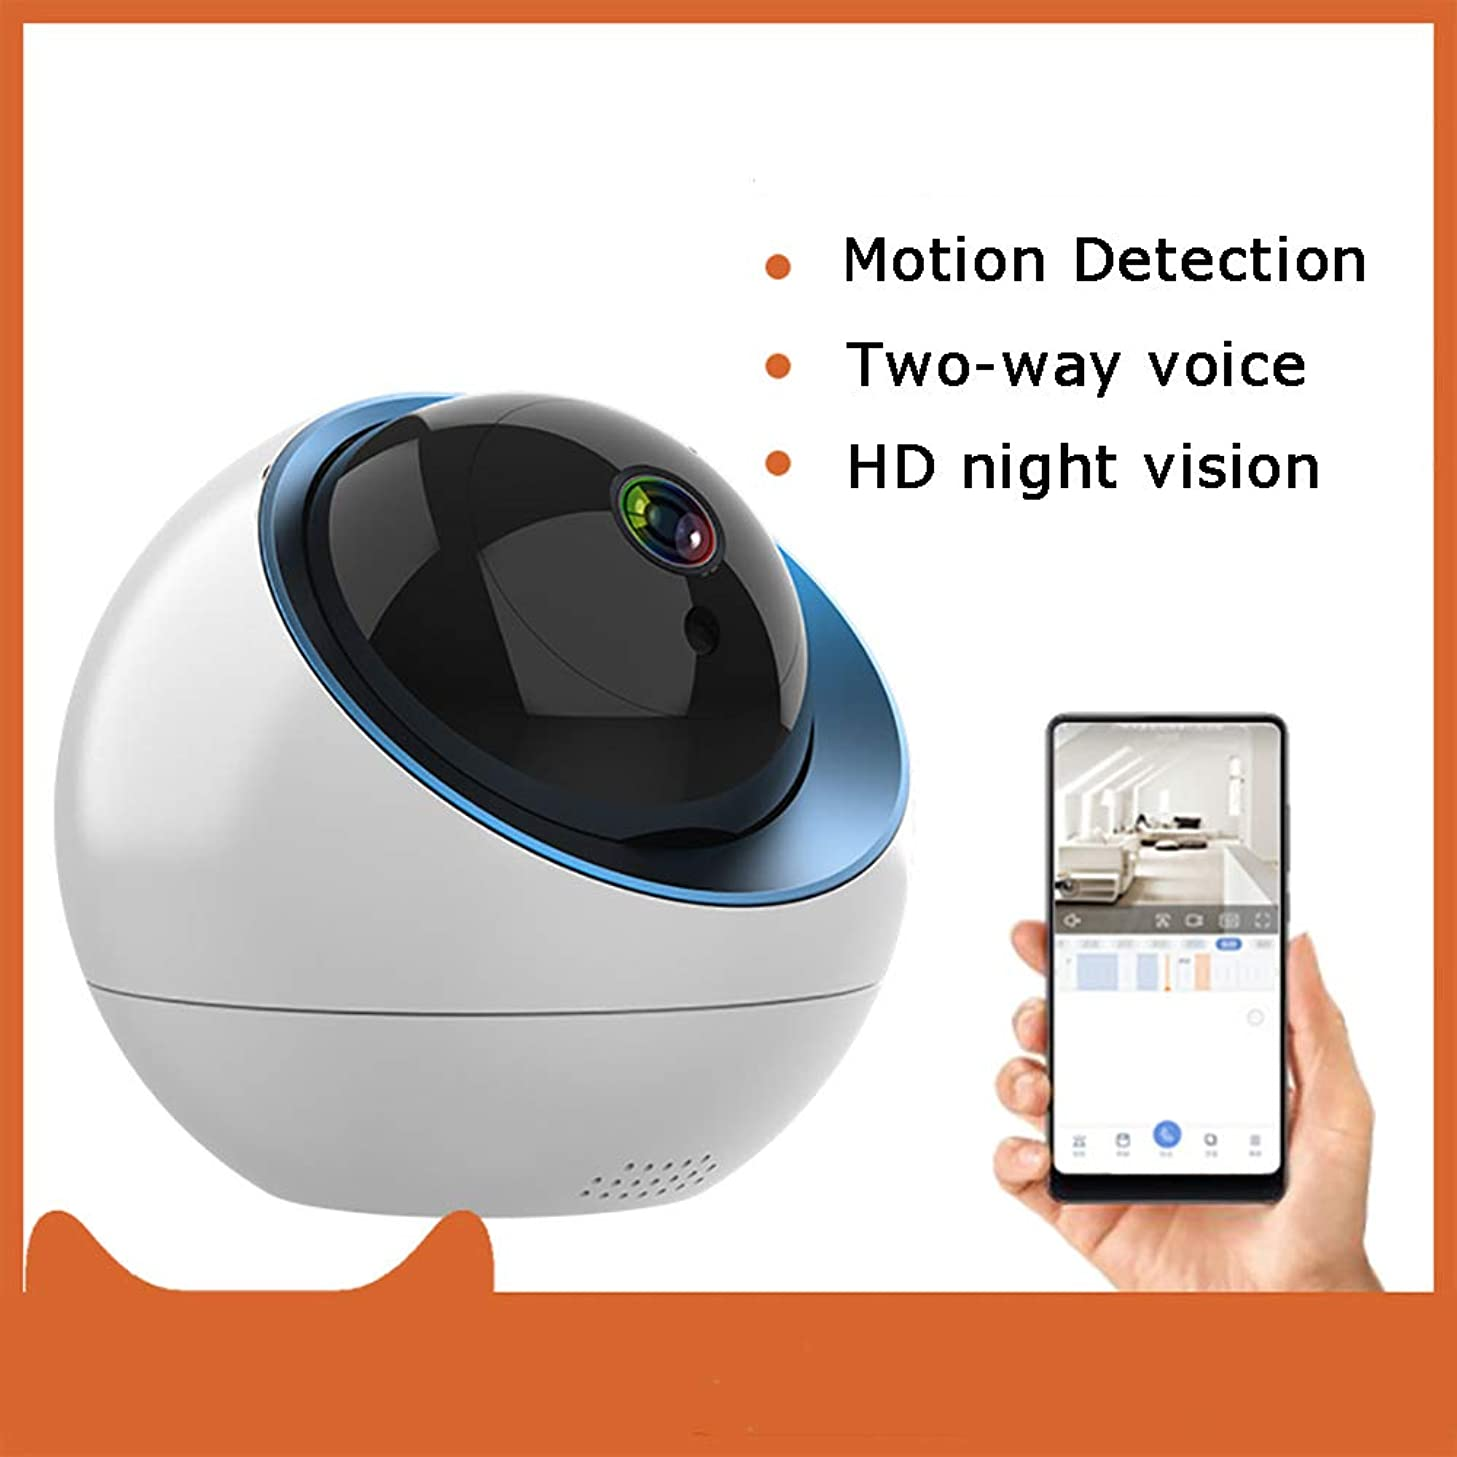 PYXZQW Camera WiFi 1080p Pan/Zoom Home Security System with Night Vision Motion Detection Two-Way Audio for Monitoring Baby Monitor